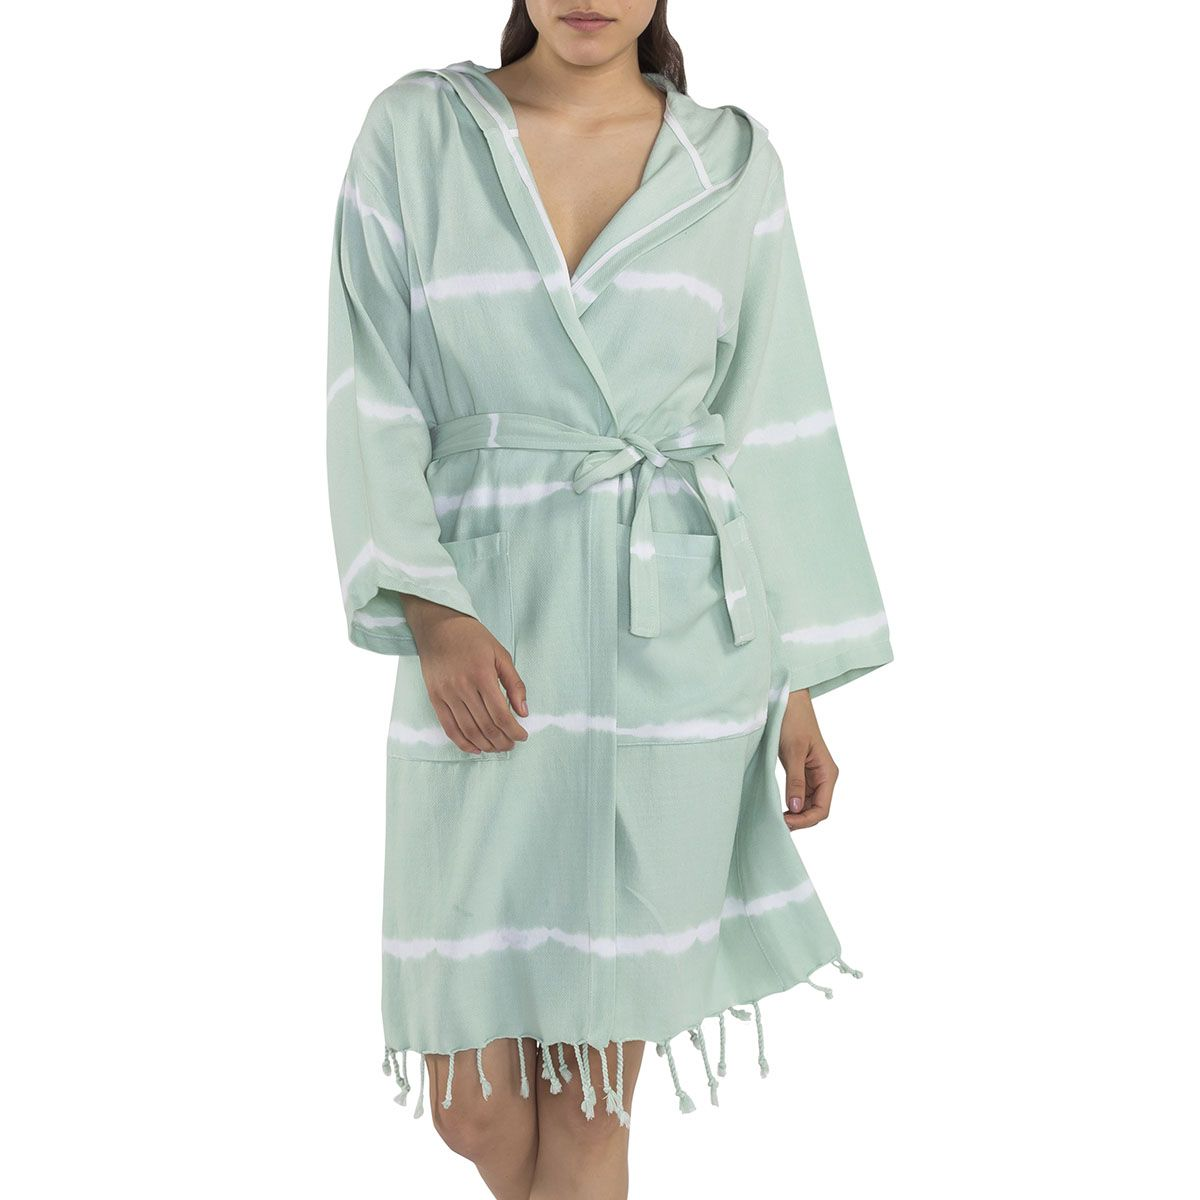 Bathrobe Tie Dye with hood - Mint Base